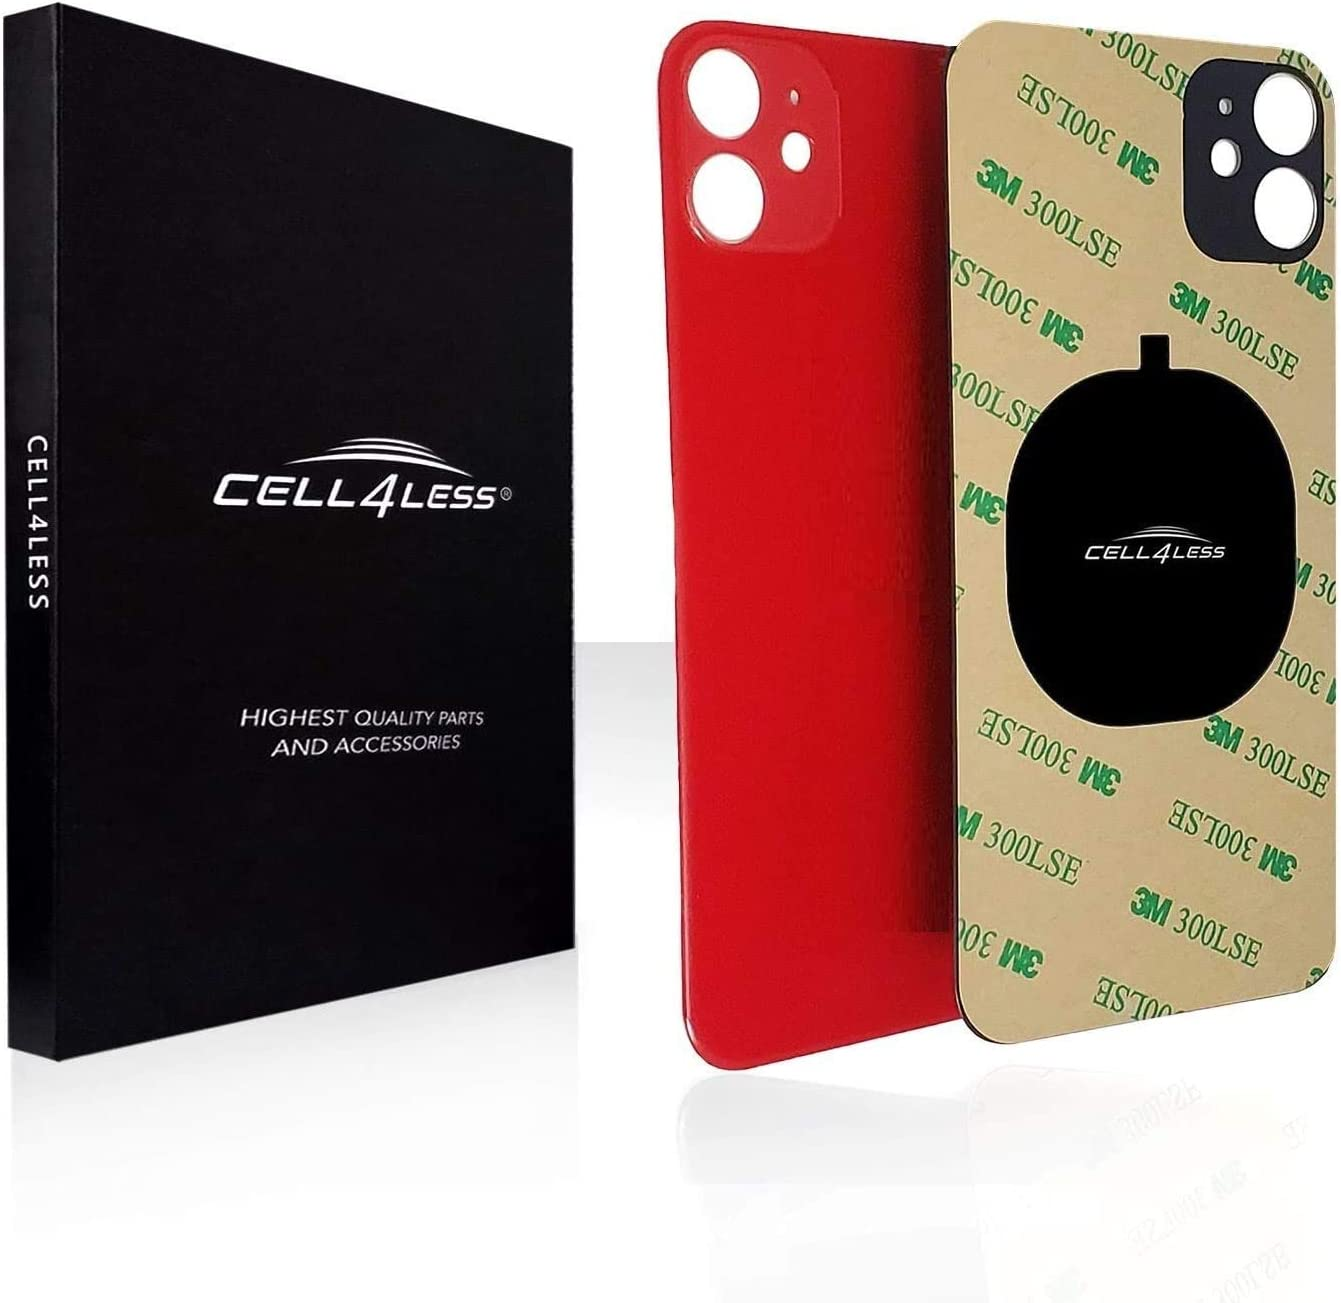 Cell4less Back Glass Compatible with The iPhone 11 Back Glass Replacement W/Full Body Adhesive, Removal Tool, and Wide Camera Hole for Quicker Installation